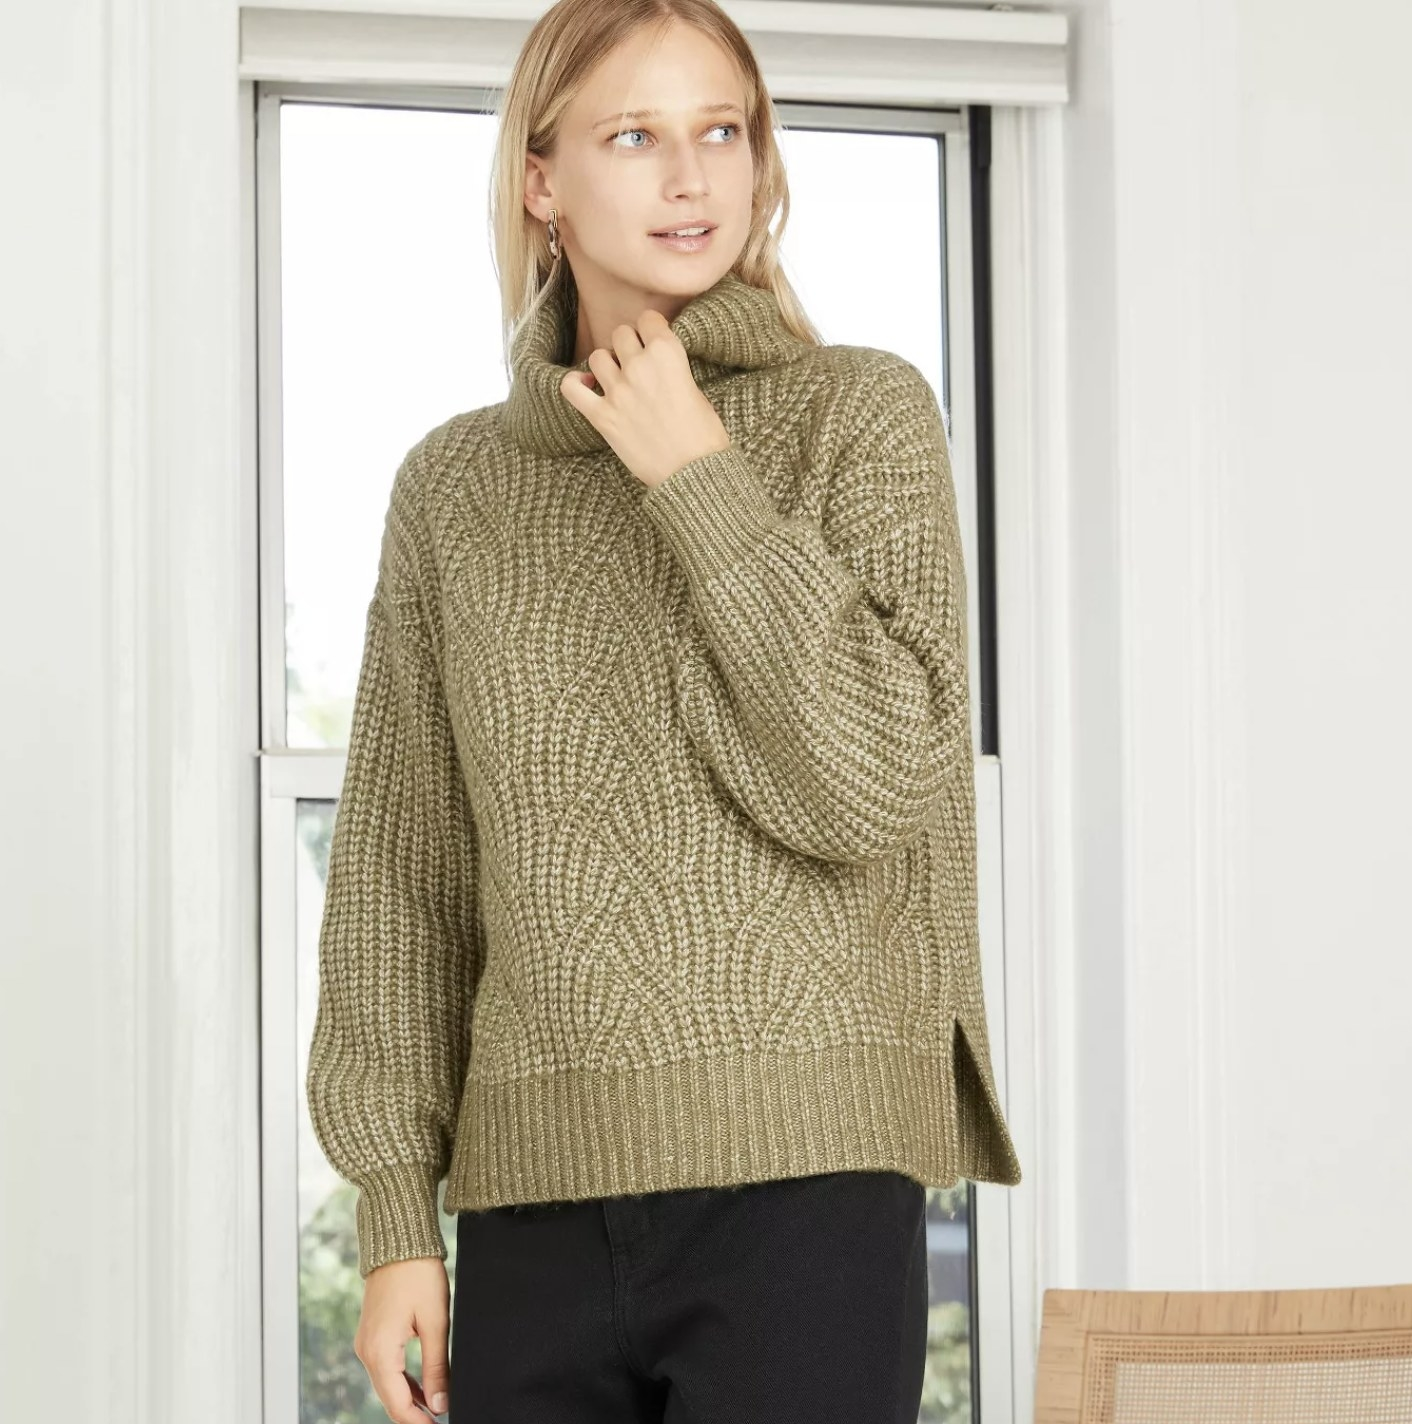 Model is wearing an olive green cable stitched turtleneck sweater with side slits